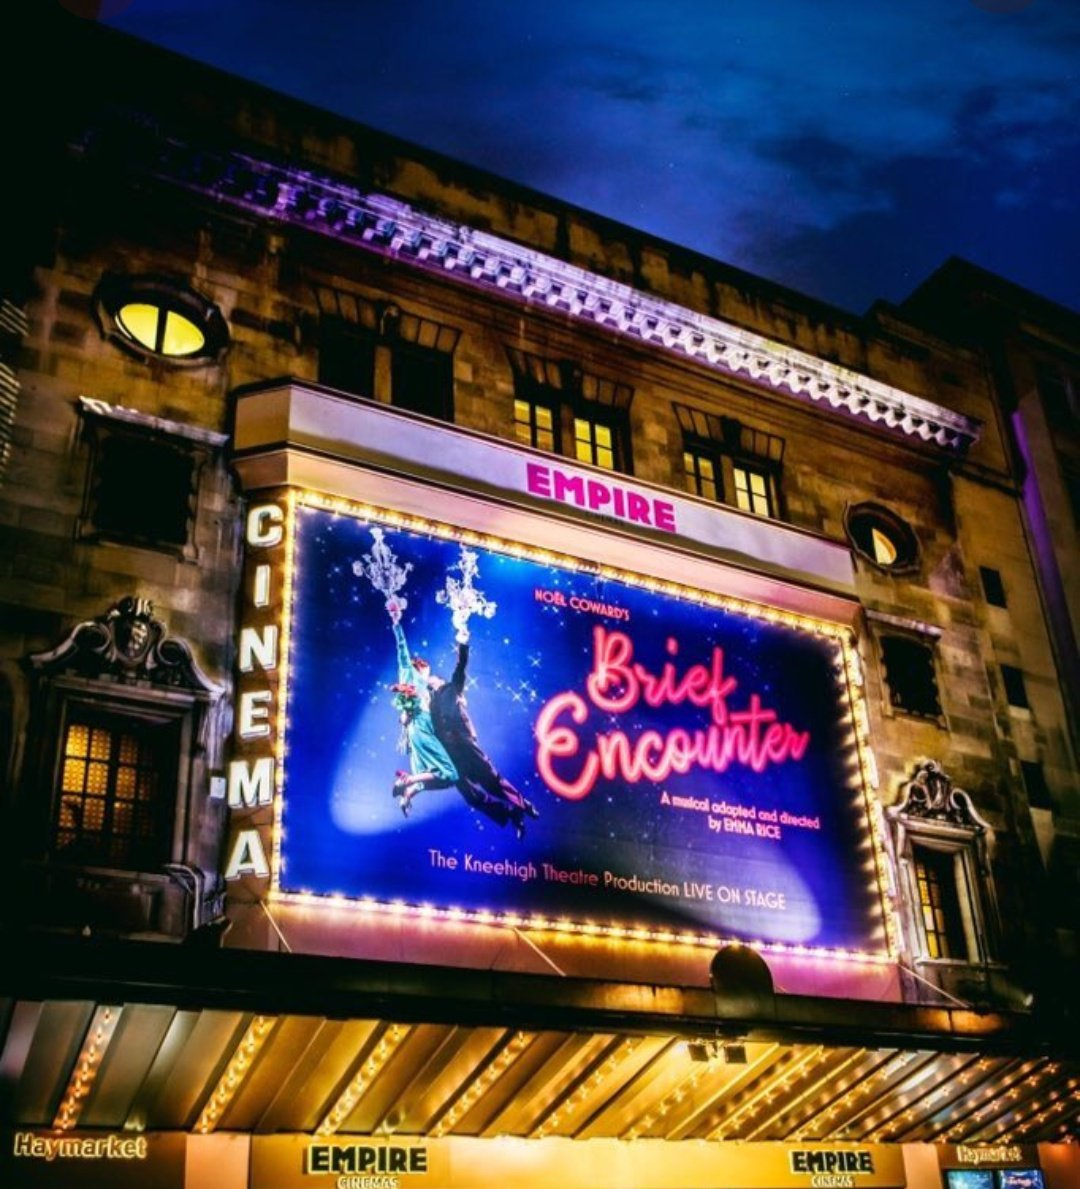 test Twitter Media - Tonight is #briefencounters night! @BE_onstage. @SilverCelice and I have been waiting for this show for ages. Weather is beautiful too. What a great day! https://t.co/hFCtdzlp95